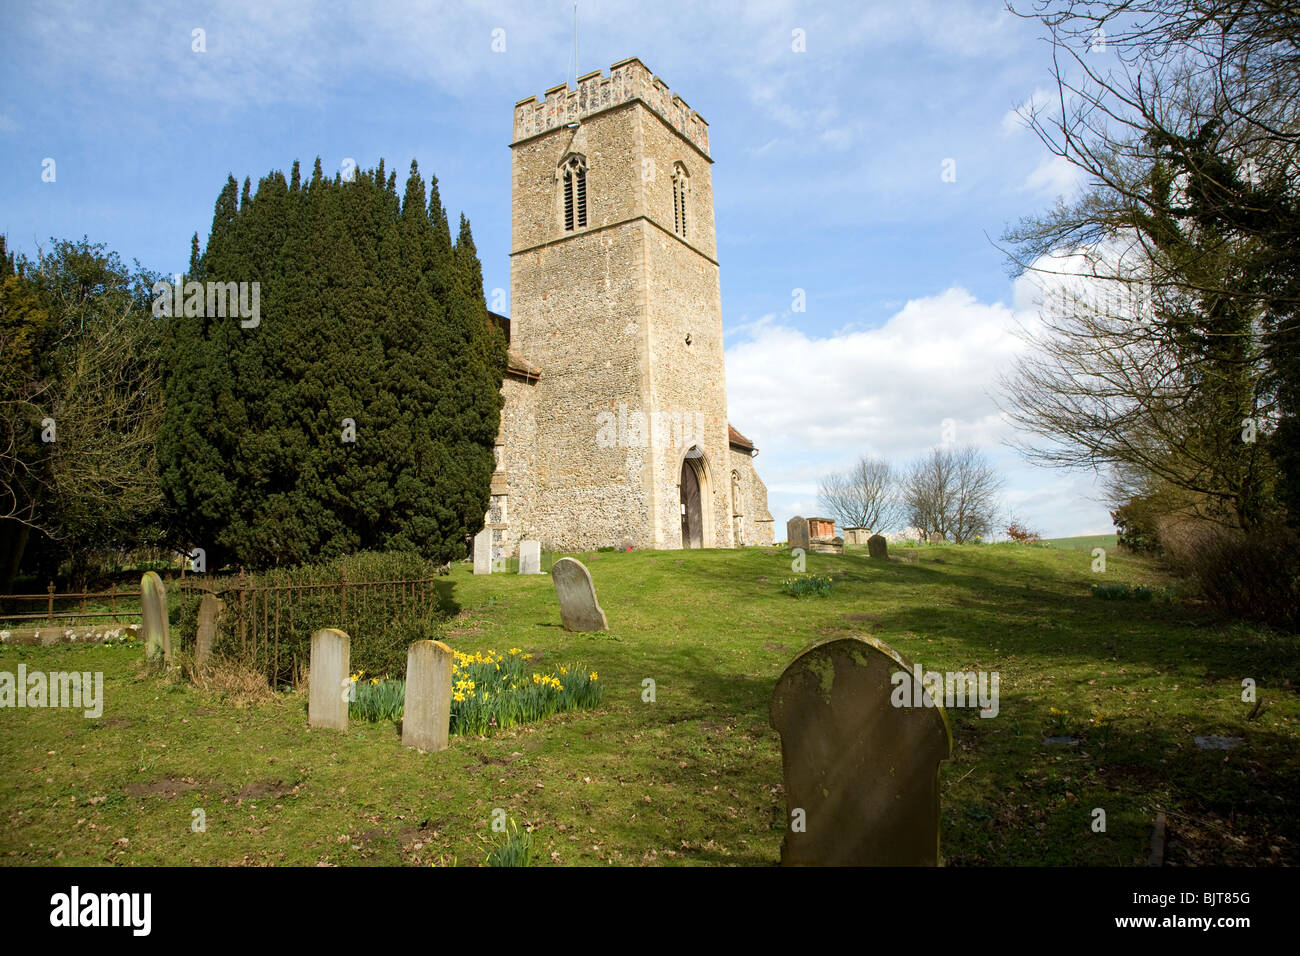 Tower and churchyard Church of St Botolph, Burgh, Suffolk - Stock Image